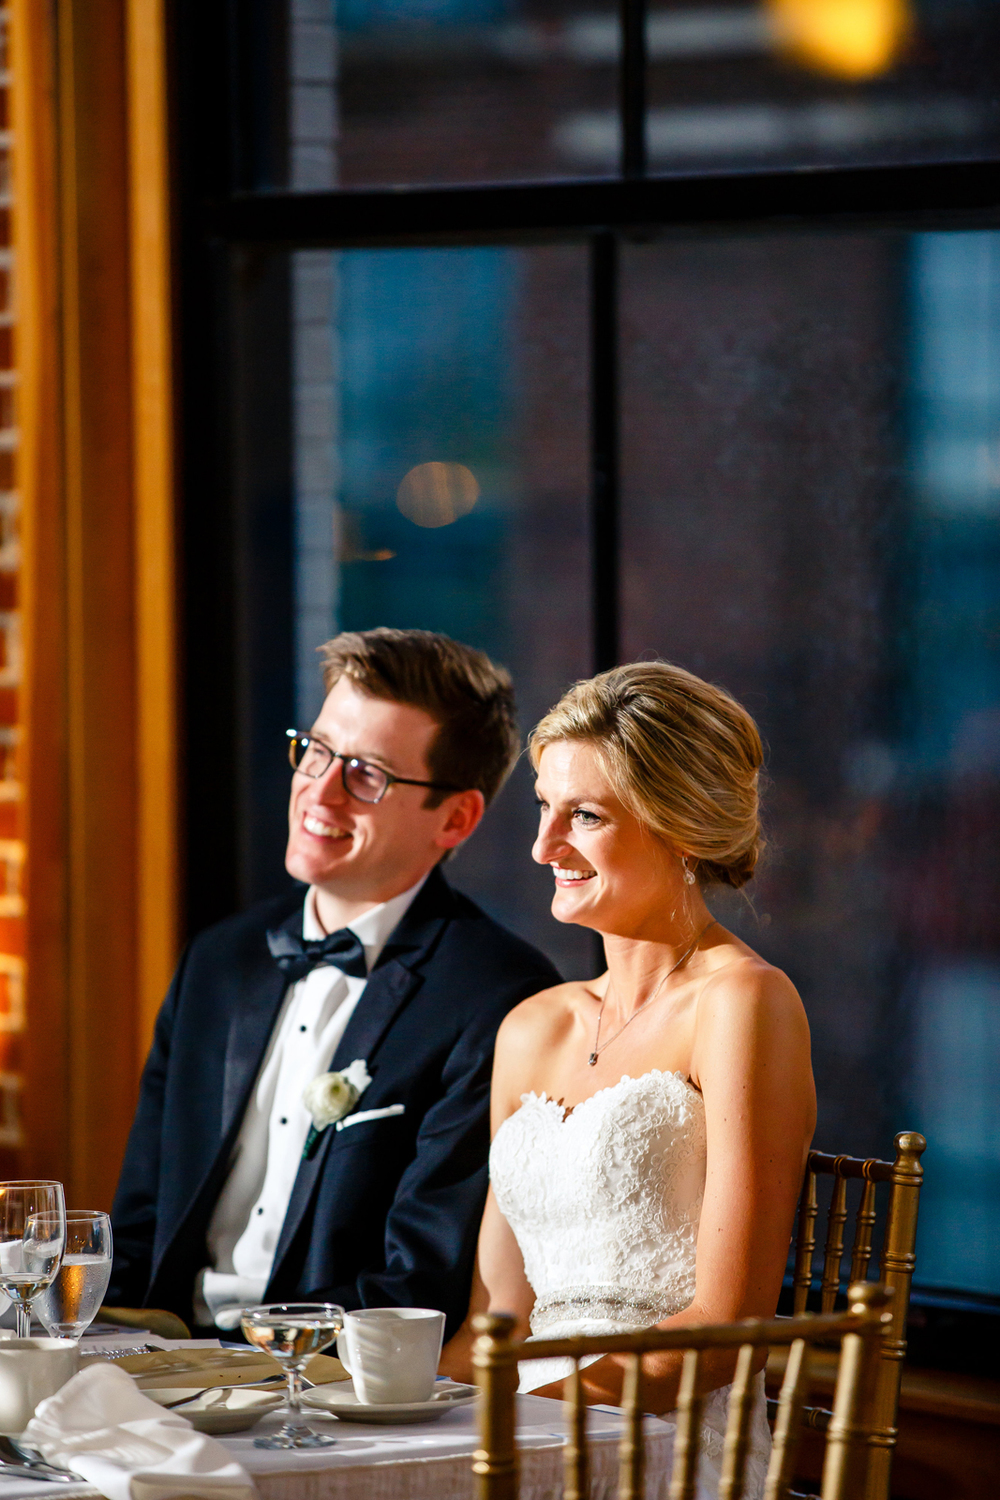 Wedding Party Speeches Gold Wedding Reception at Windows on Washington Downtown St. Louis Wedding Photographers by Oldani Photography 6.jpg